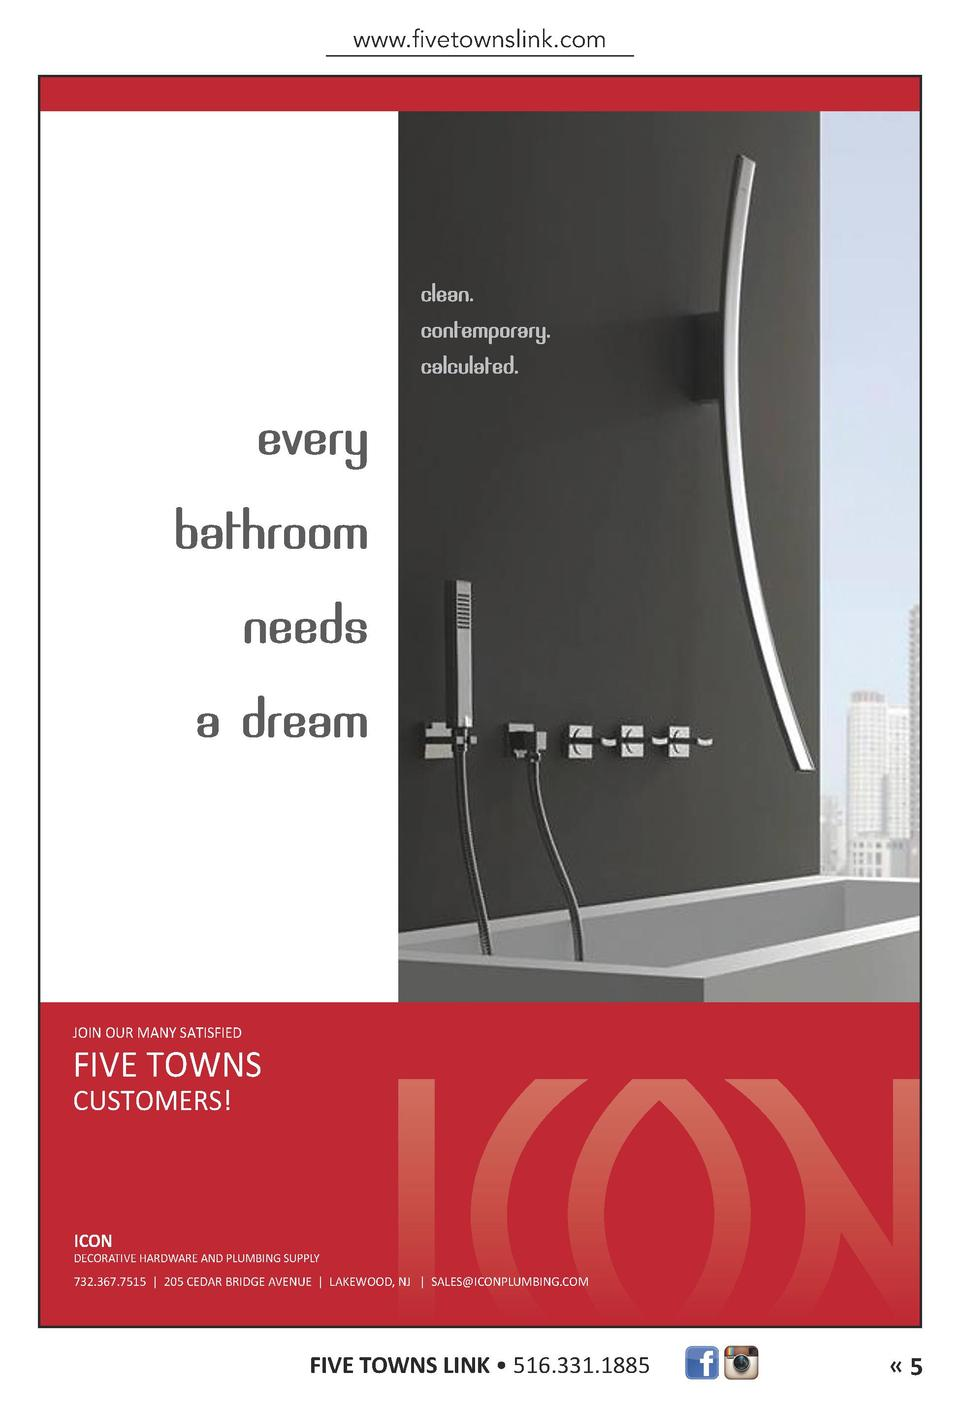 ICON ad NOV14_Layout 1 10 28 2014 2 59 PM Page 1  www.fivetownslink.com  JOIN OUR MANY SATISFIED  FIVE TOWNS CUSTOMERS   I...